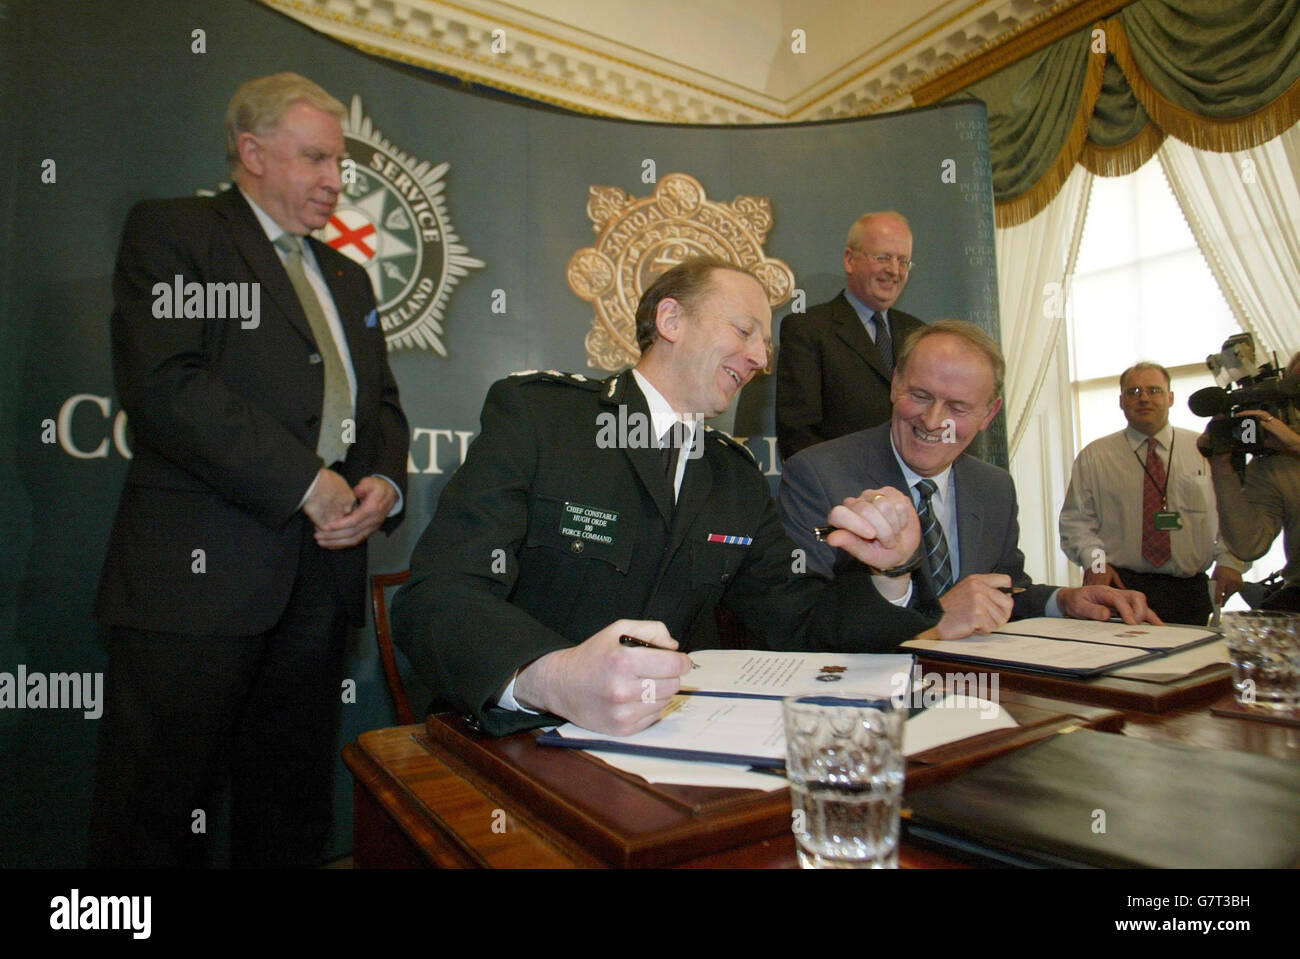 Historic agreement on cross border policing hillsborough stock historic agreement on cross border policing hillsborough platinumwayz